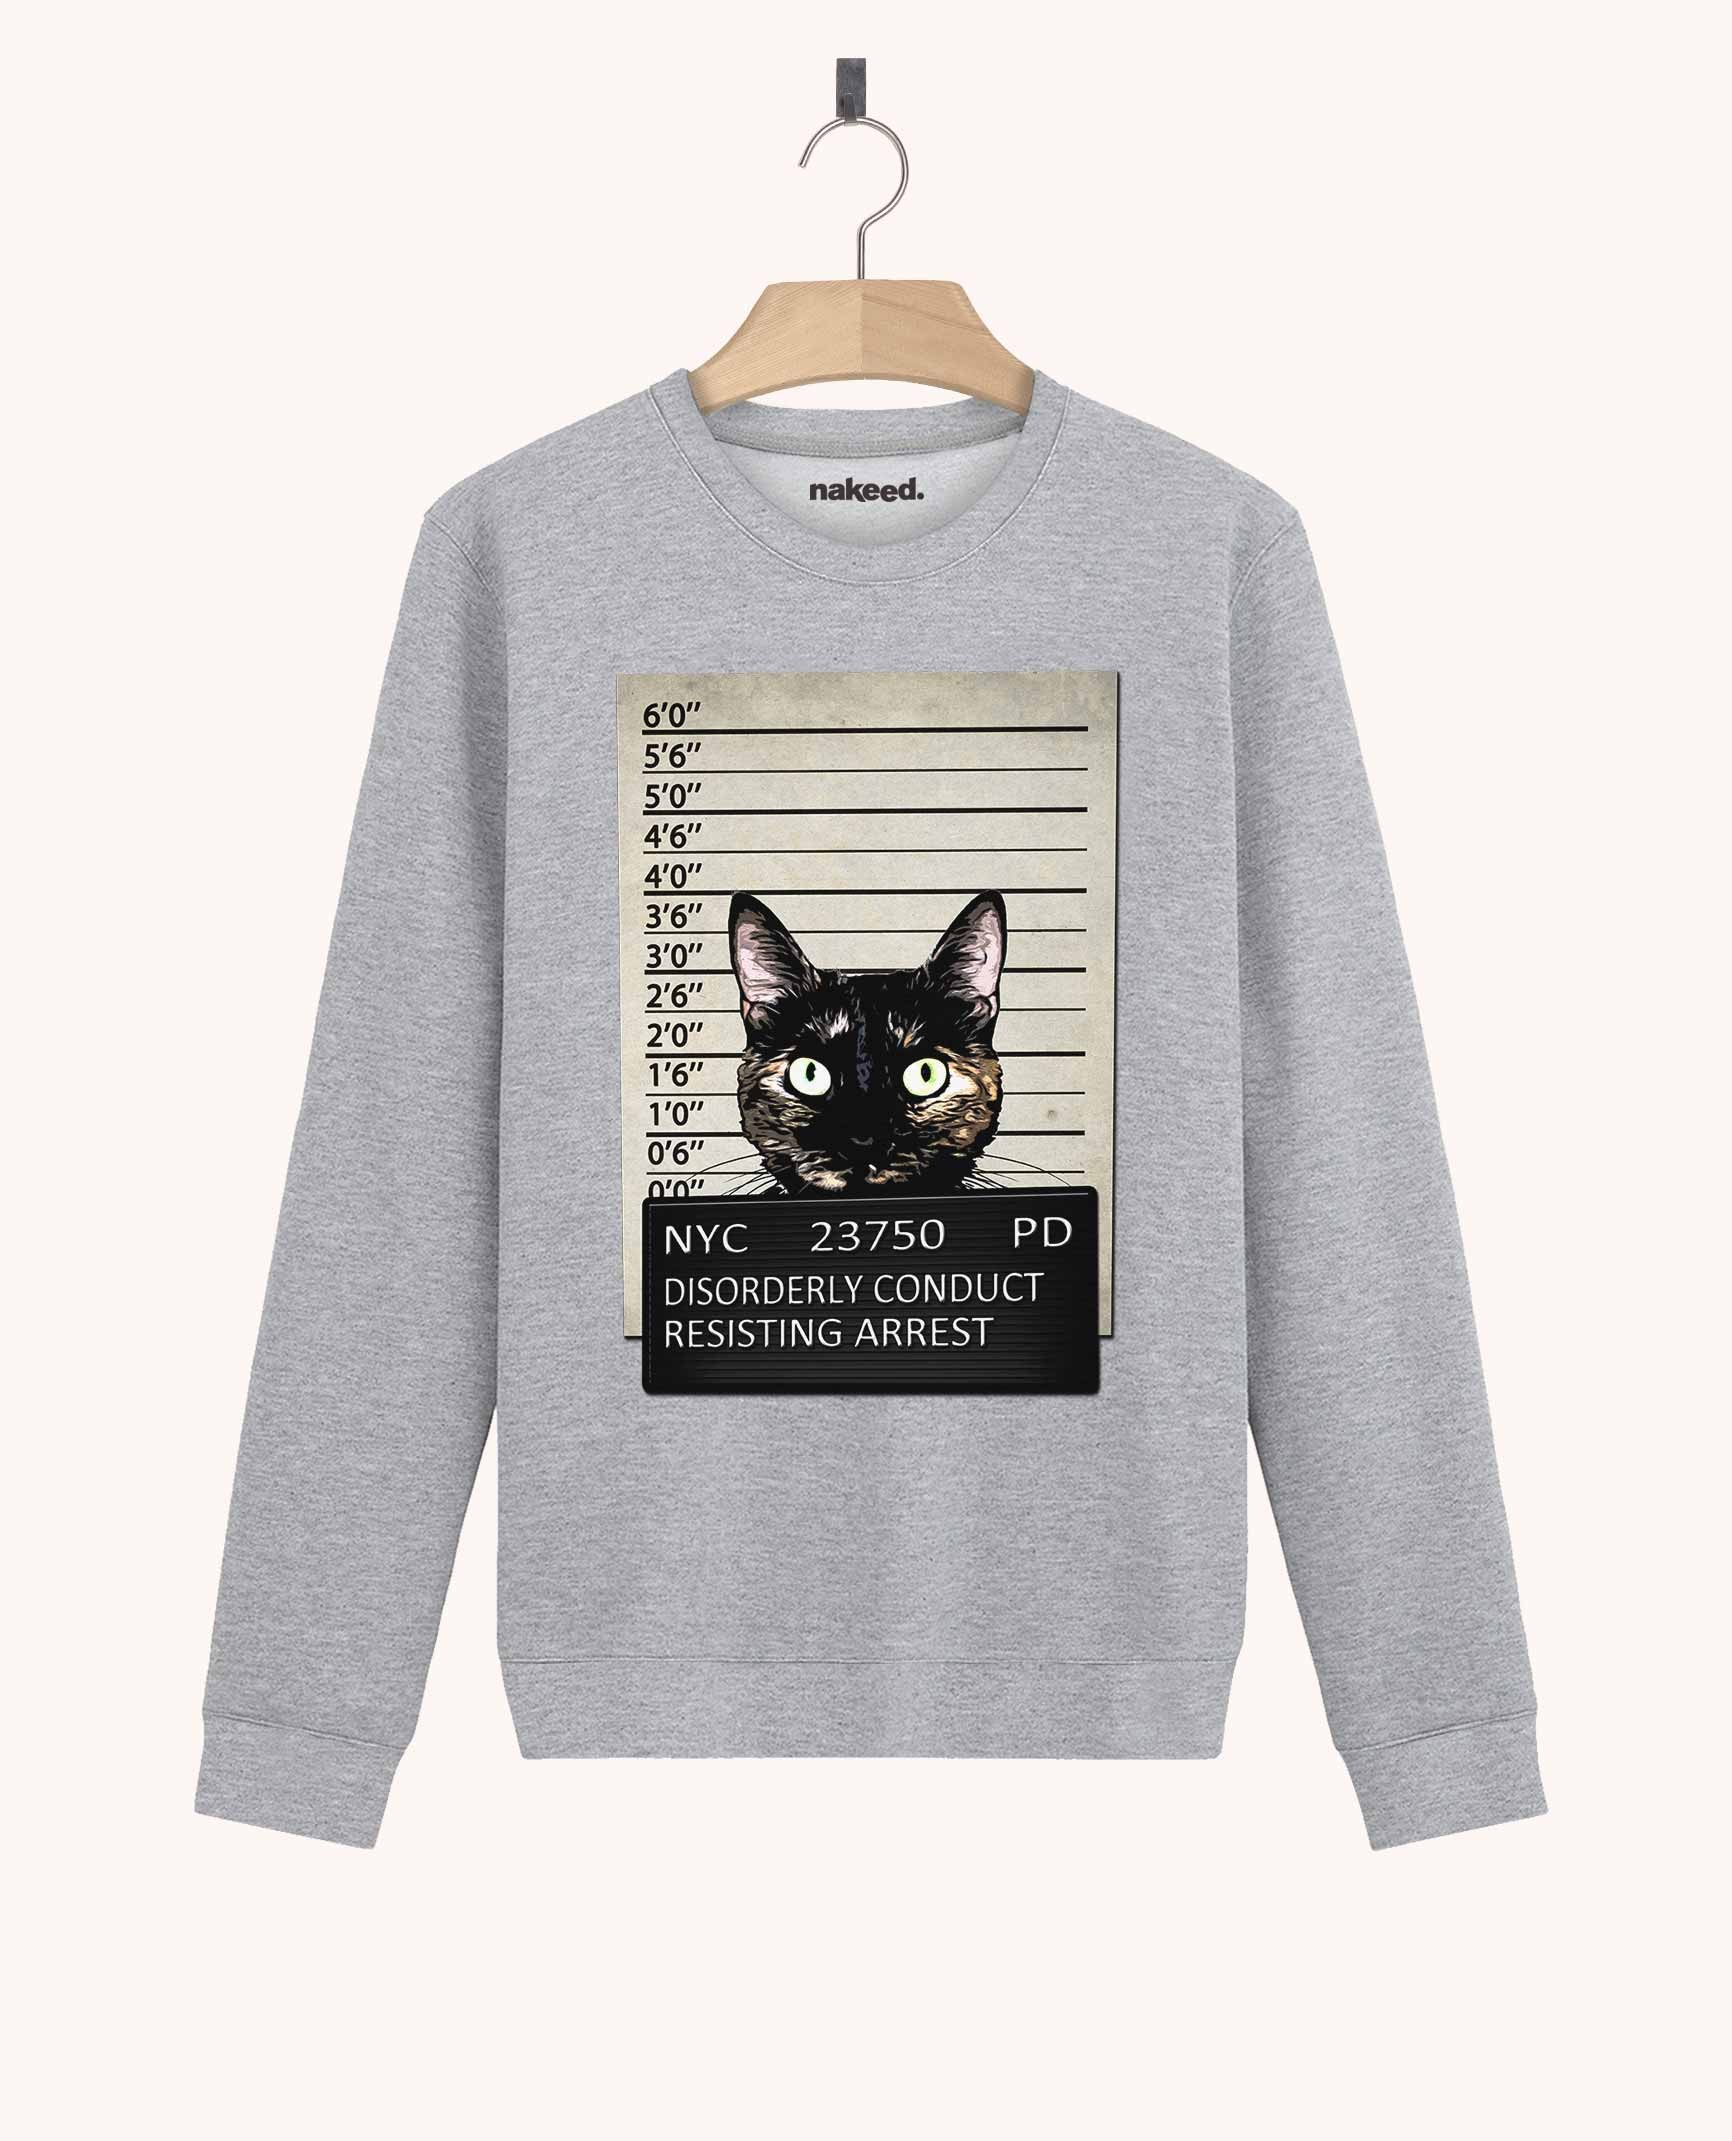 Sweatshirt Kitty Mugshot